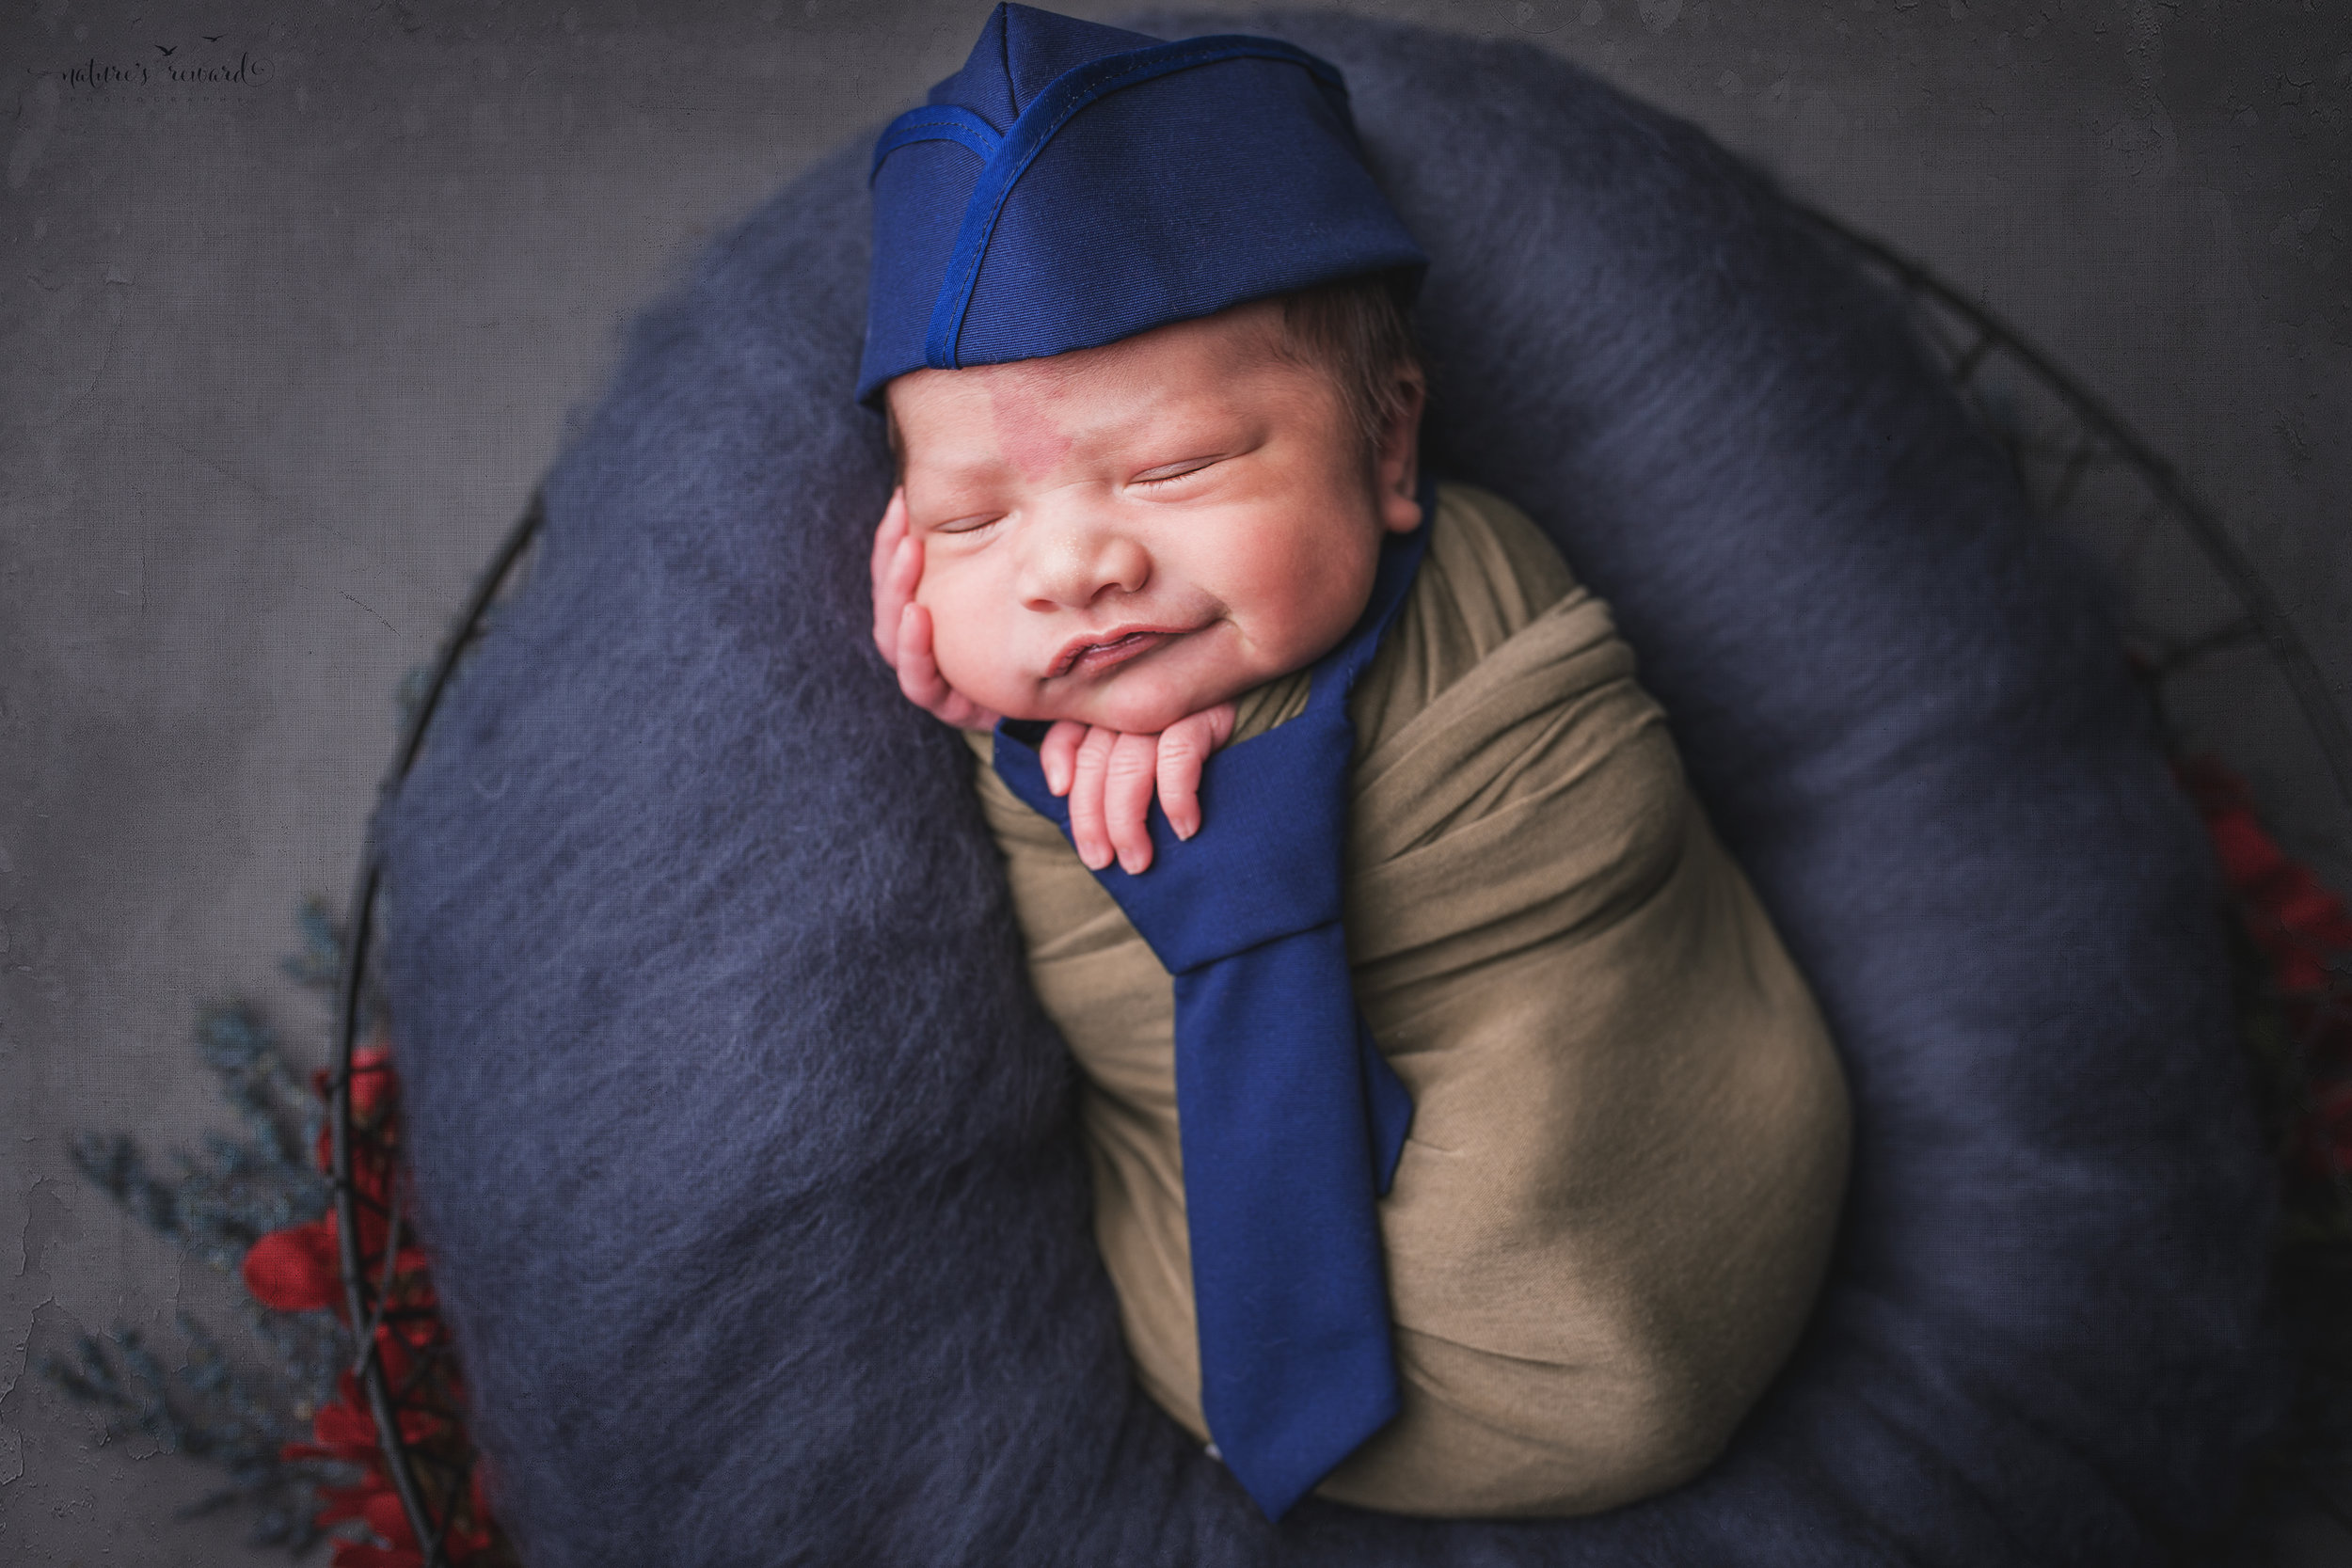 Swaddled in army green wearing a tie and service cap, a newborn portrait by Nature's Reward Photography